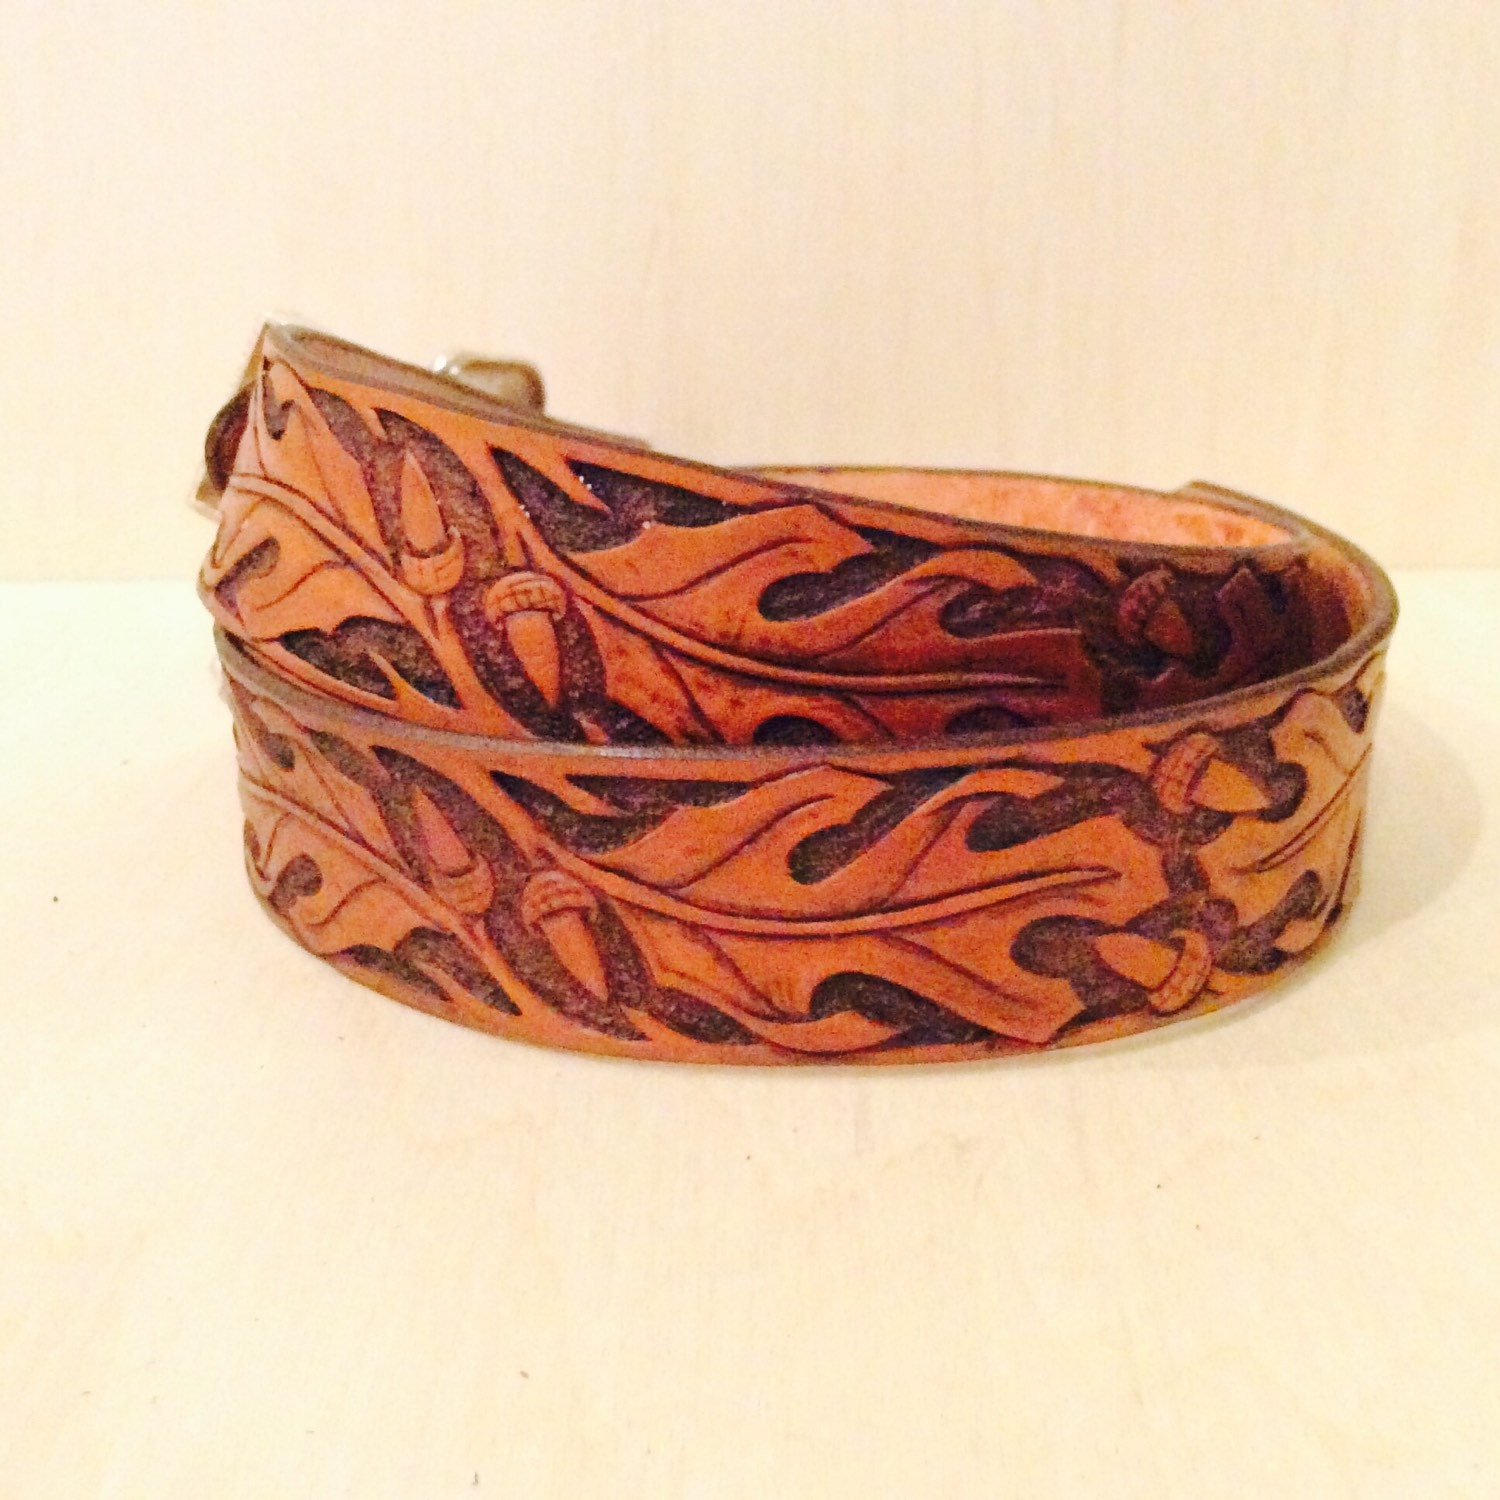 Hand tooled leather belt with oak leaf western